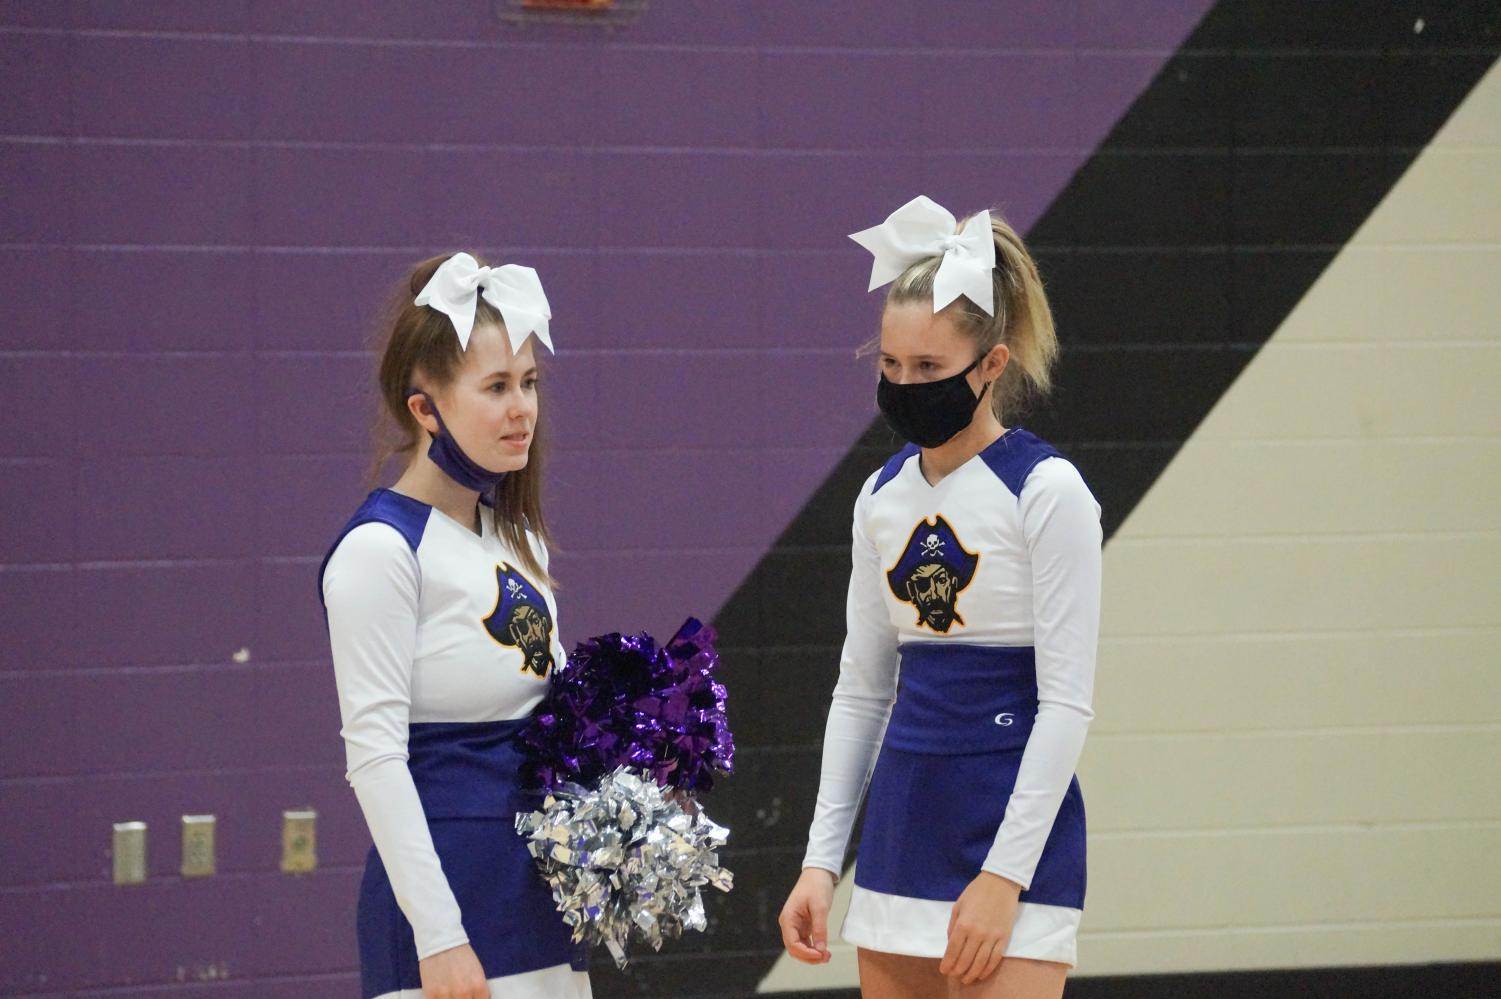 Piper+Cheer+Team+places+seventh+at+State%3B+Just+Shy+of+Finals